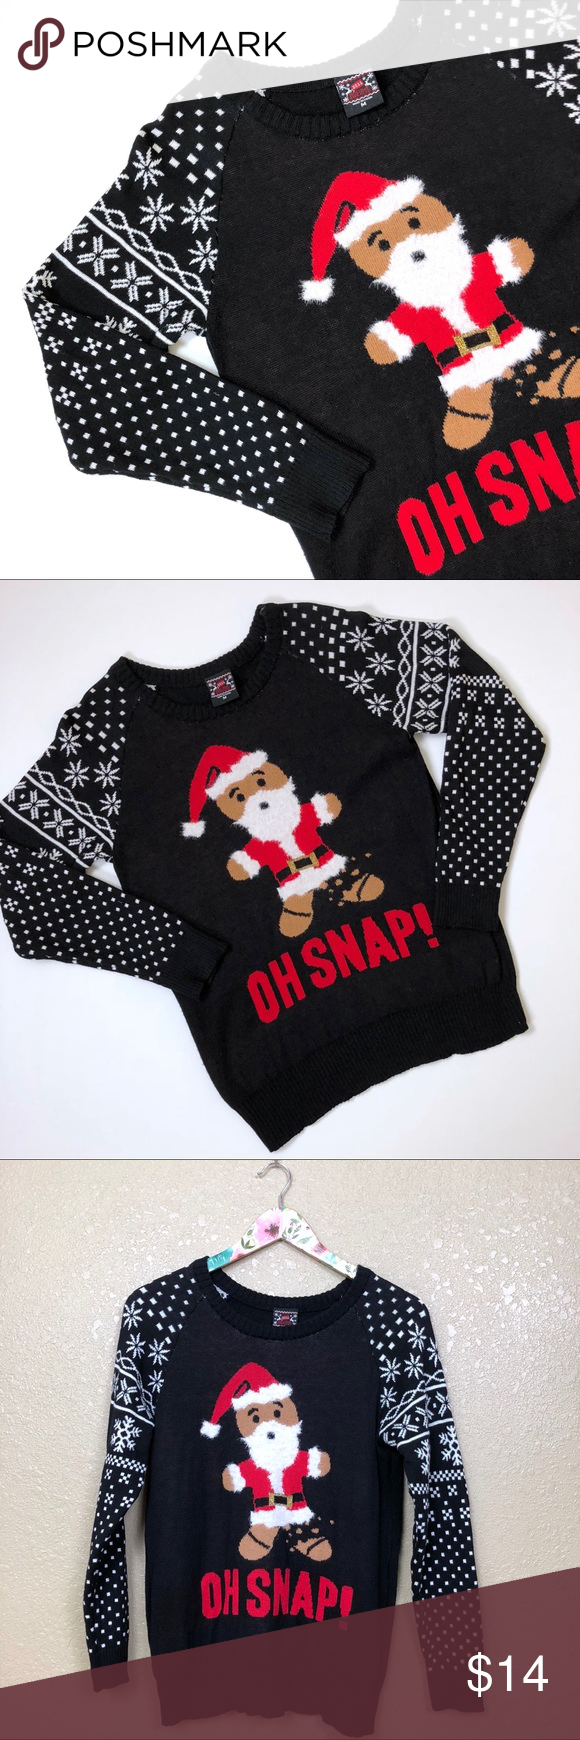 Oh Snap Gingerbread Man Christmas Sweater Oh Snap Gingerbread